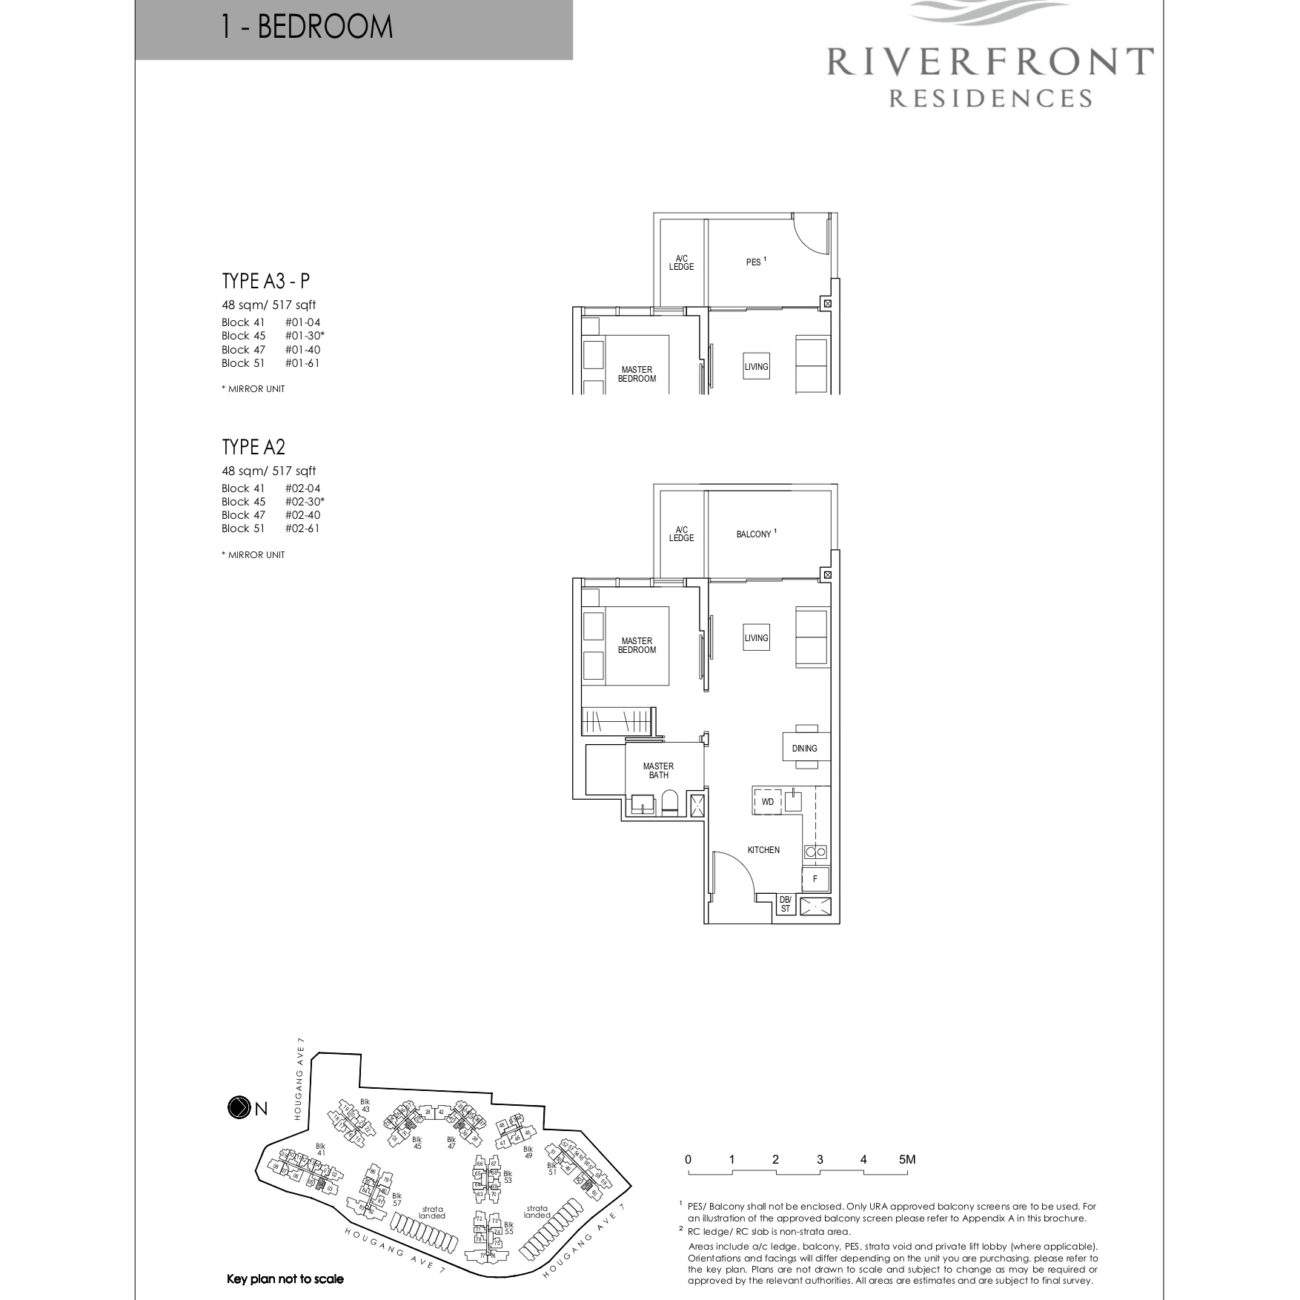 riverfront-residences-floorplan-1bedroom-a2